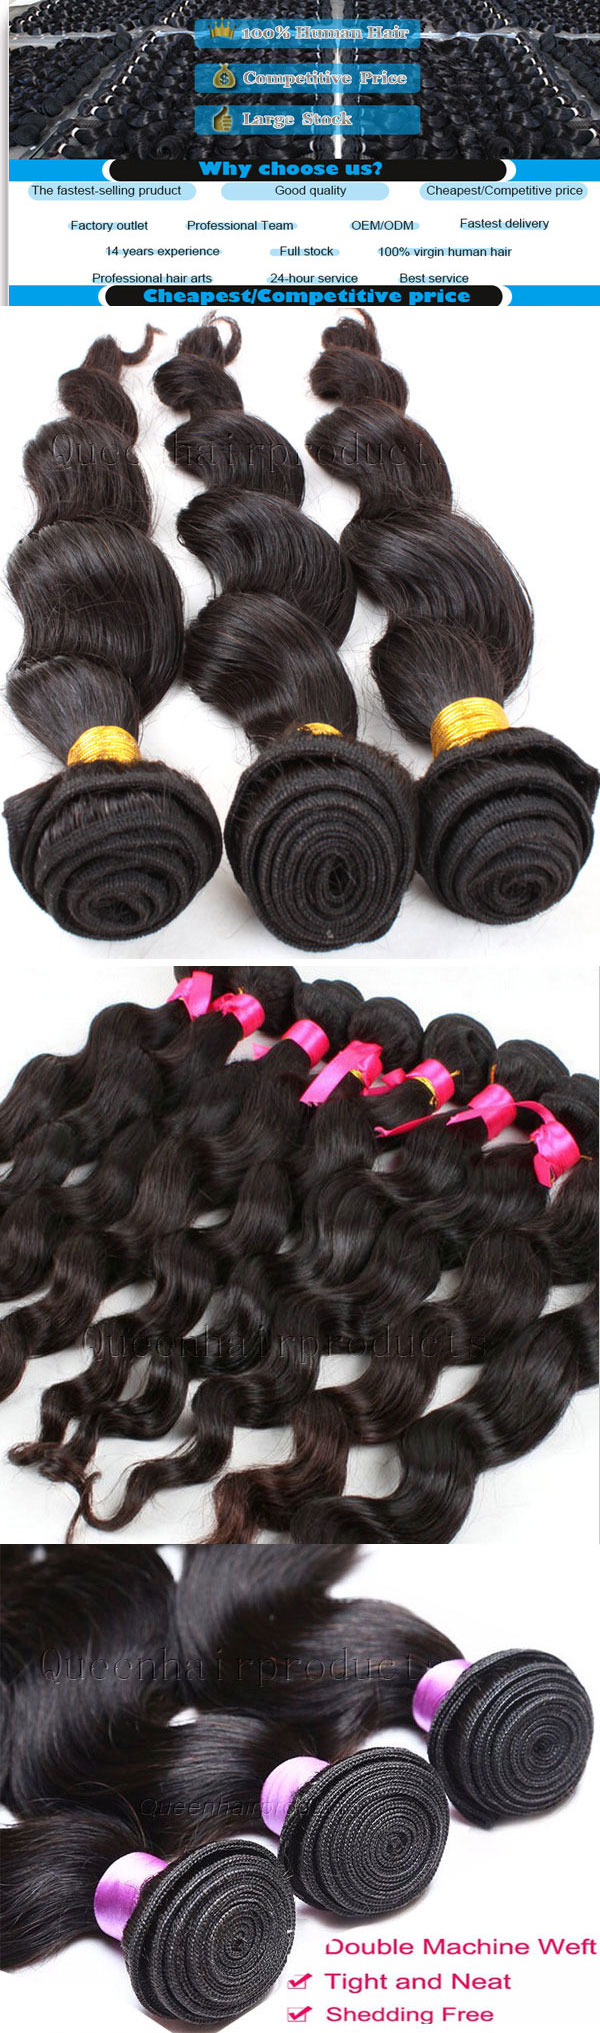 Tips About The Vaired Types Of Hair Weave Extensions